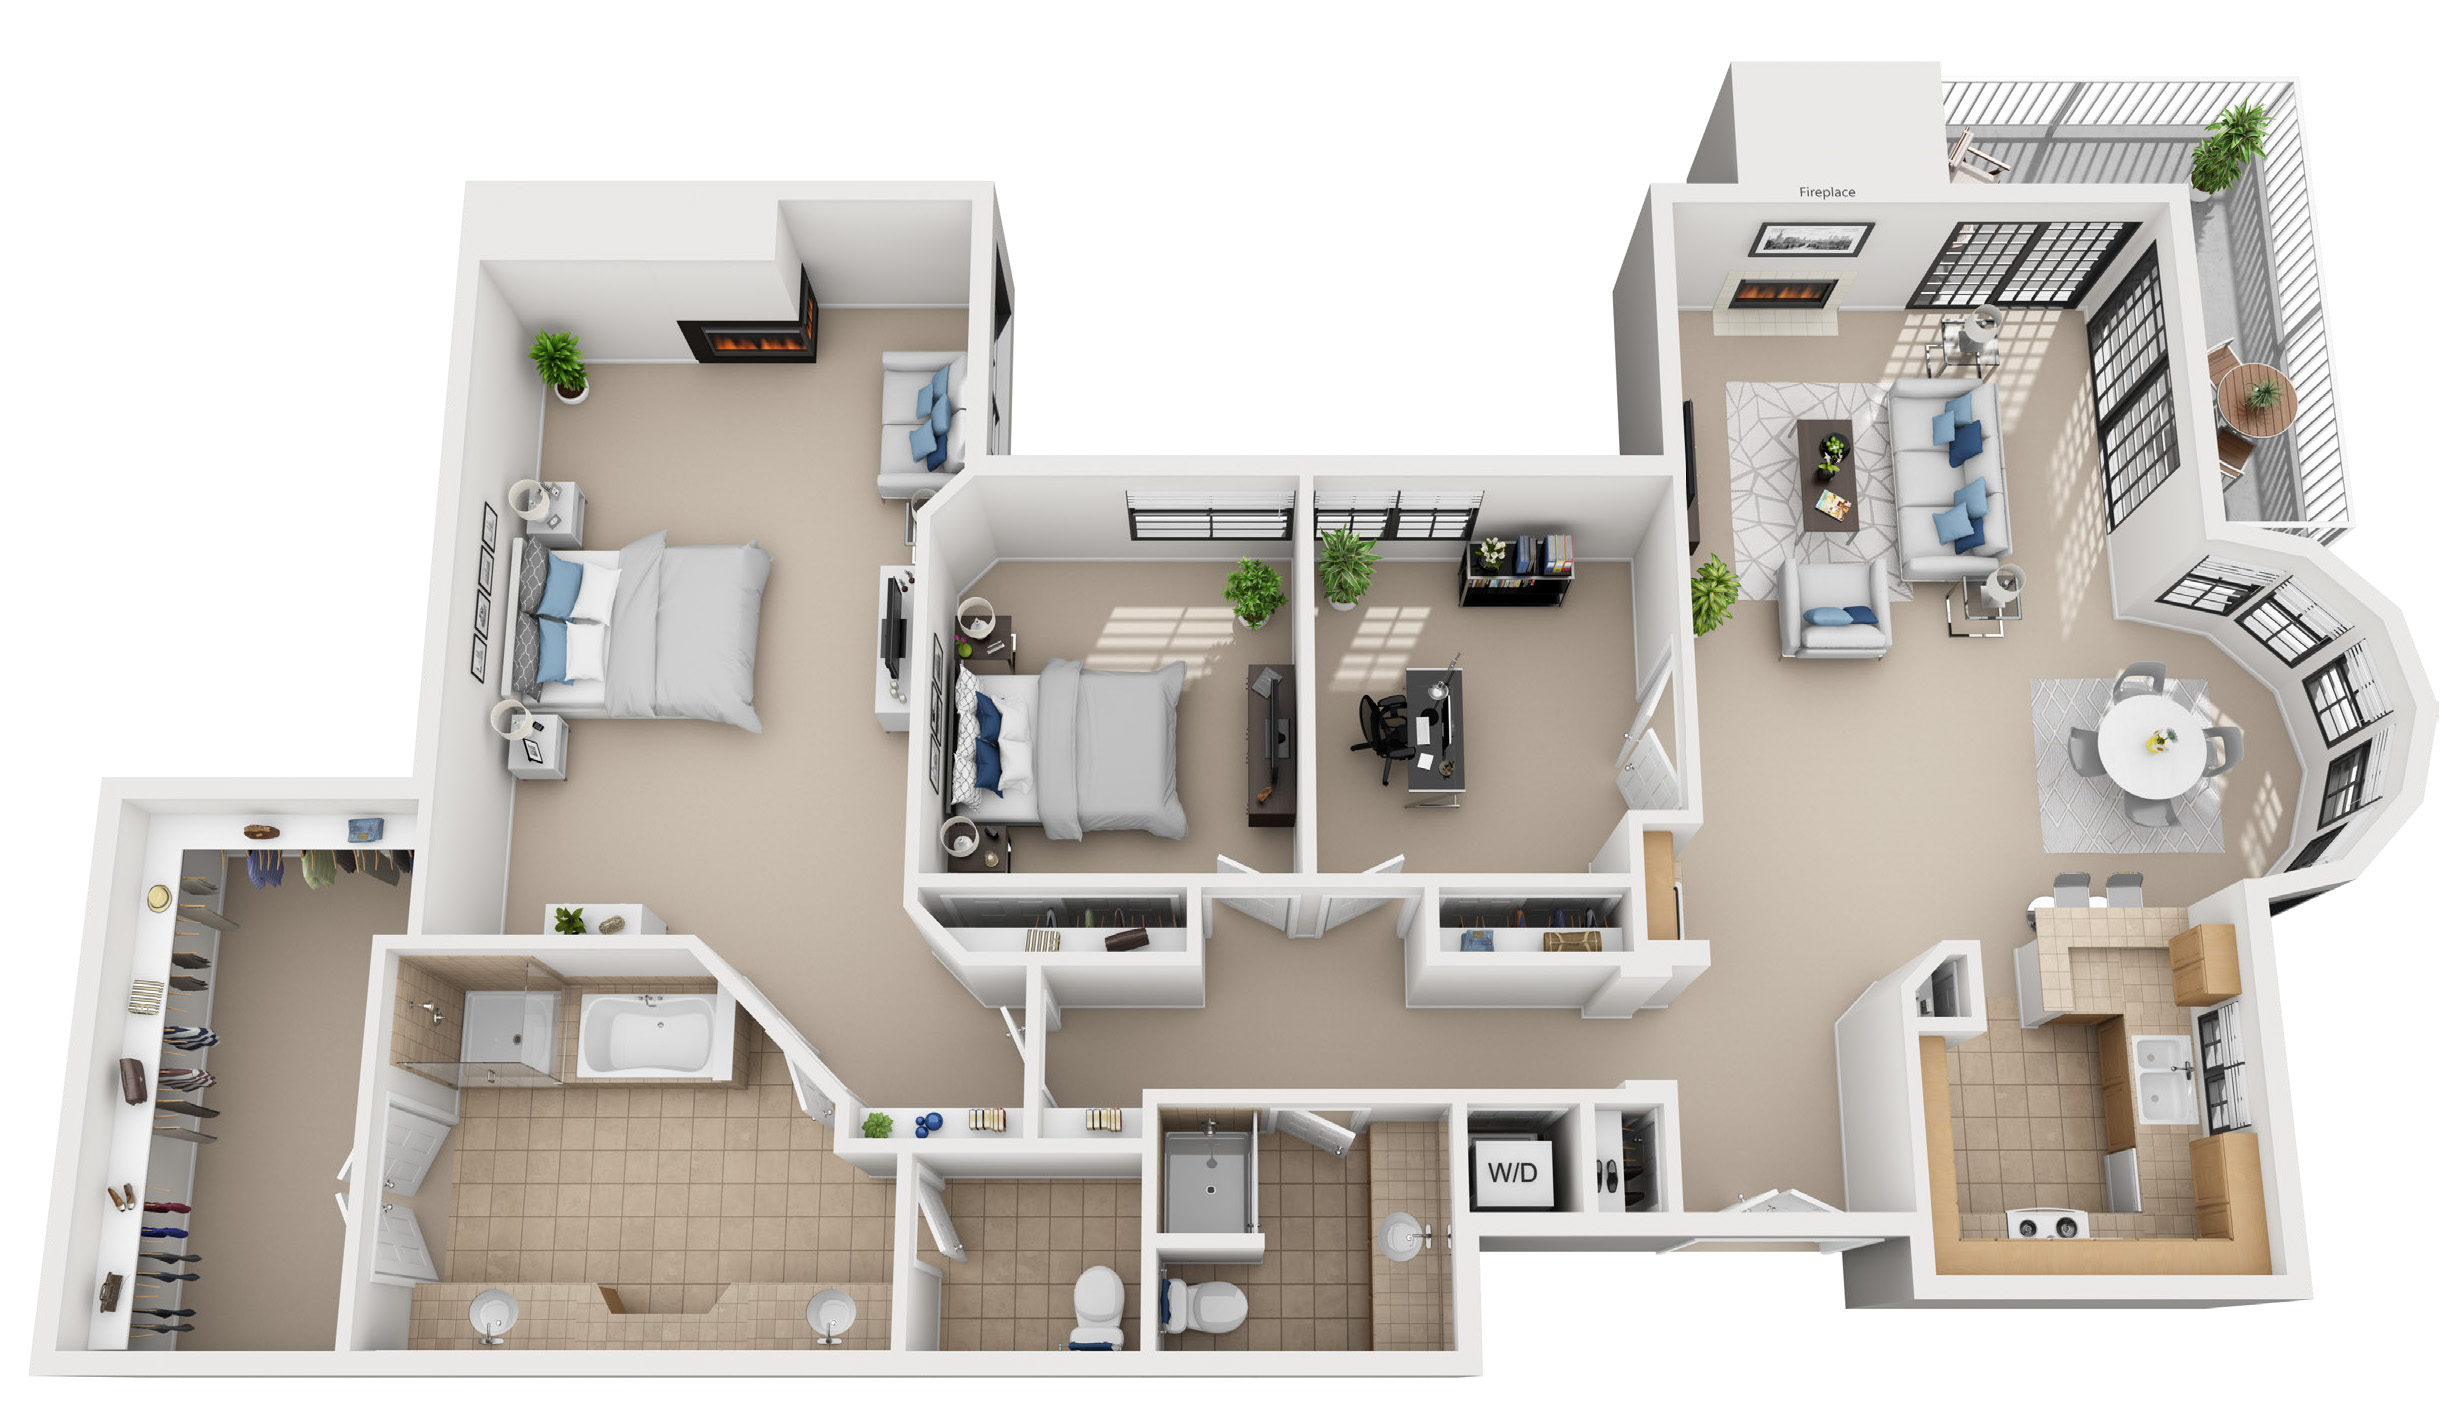 3 bedroom floor plan at 555 Barrington - Brentwood Luxury Apartments